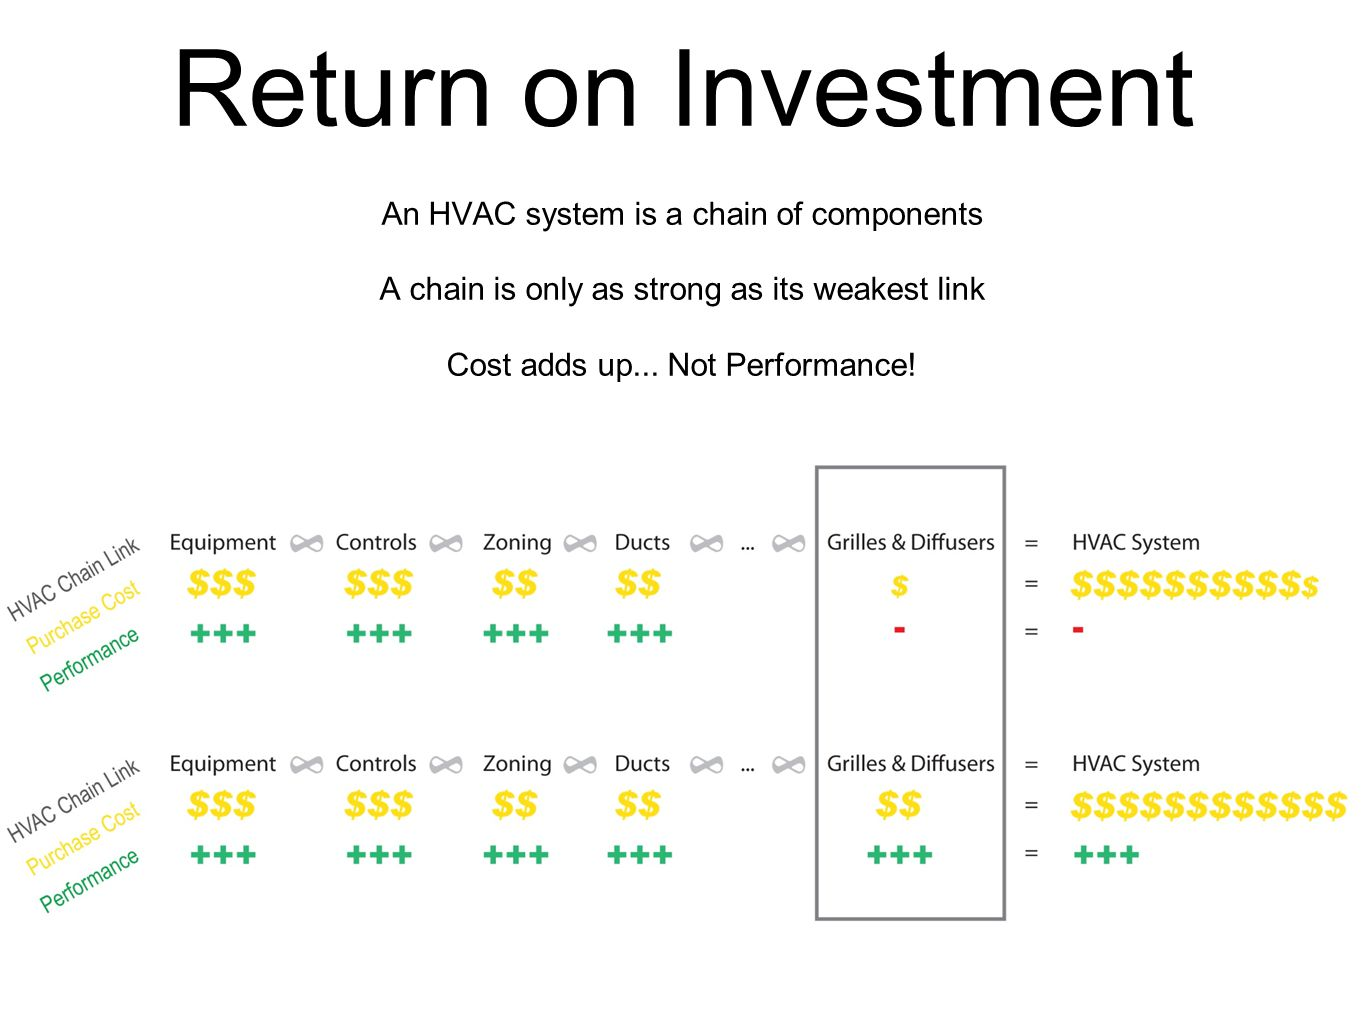 Return on Investment An HVAC system is a chain of components A chain is only as strong as its weakest link Cost adds up...